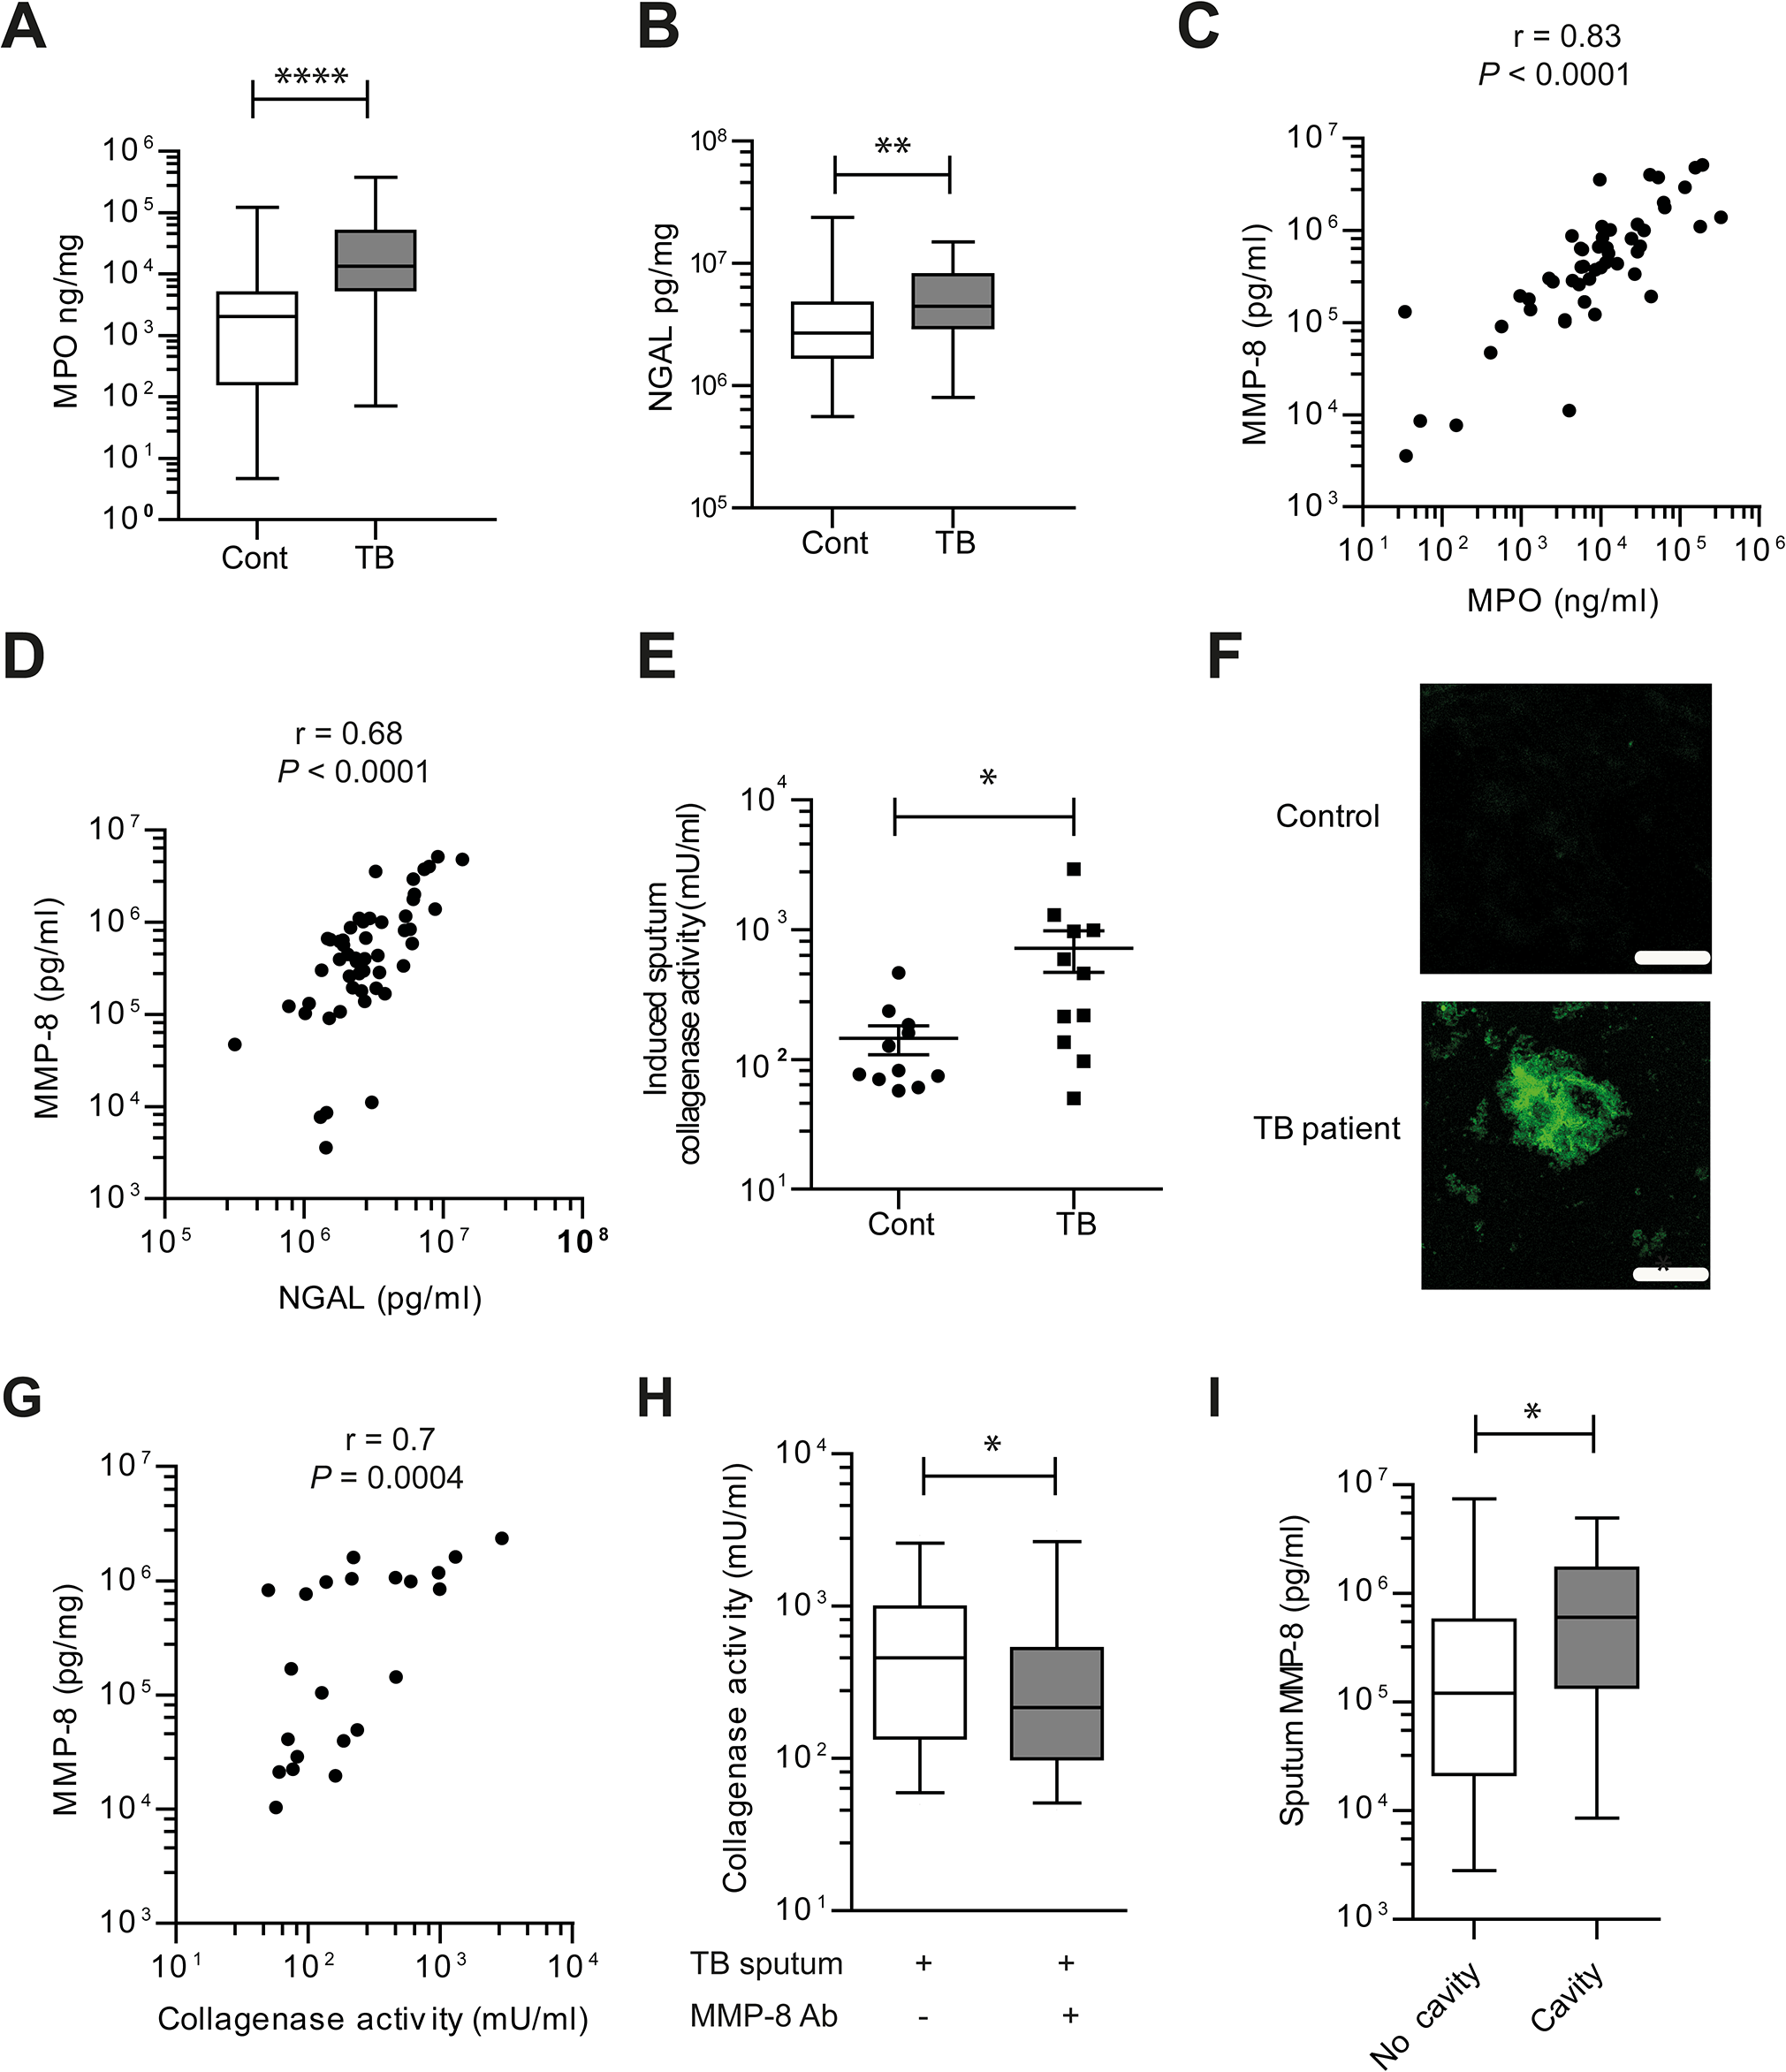 Induced sputum samples of pulmonary TB patients have increased collagenase activity due to neutrophil-derived MMP-8.